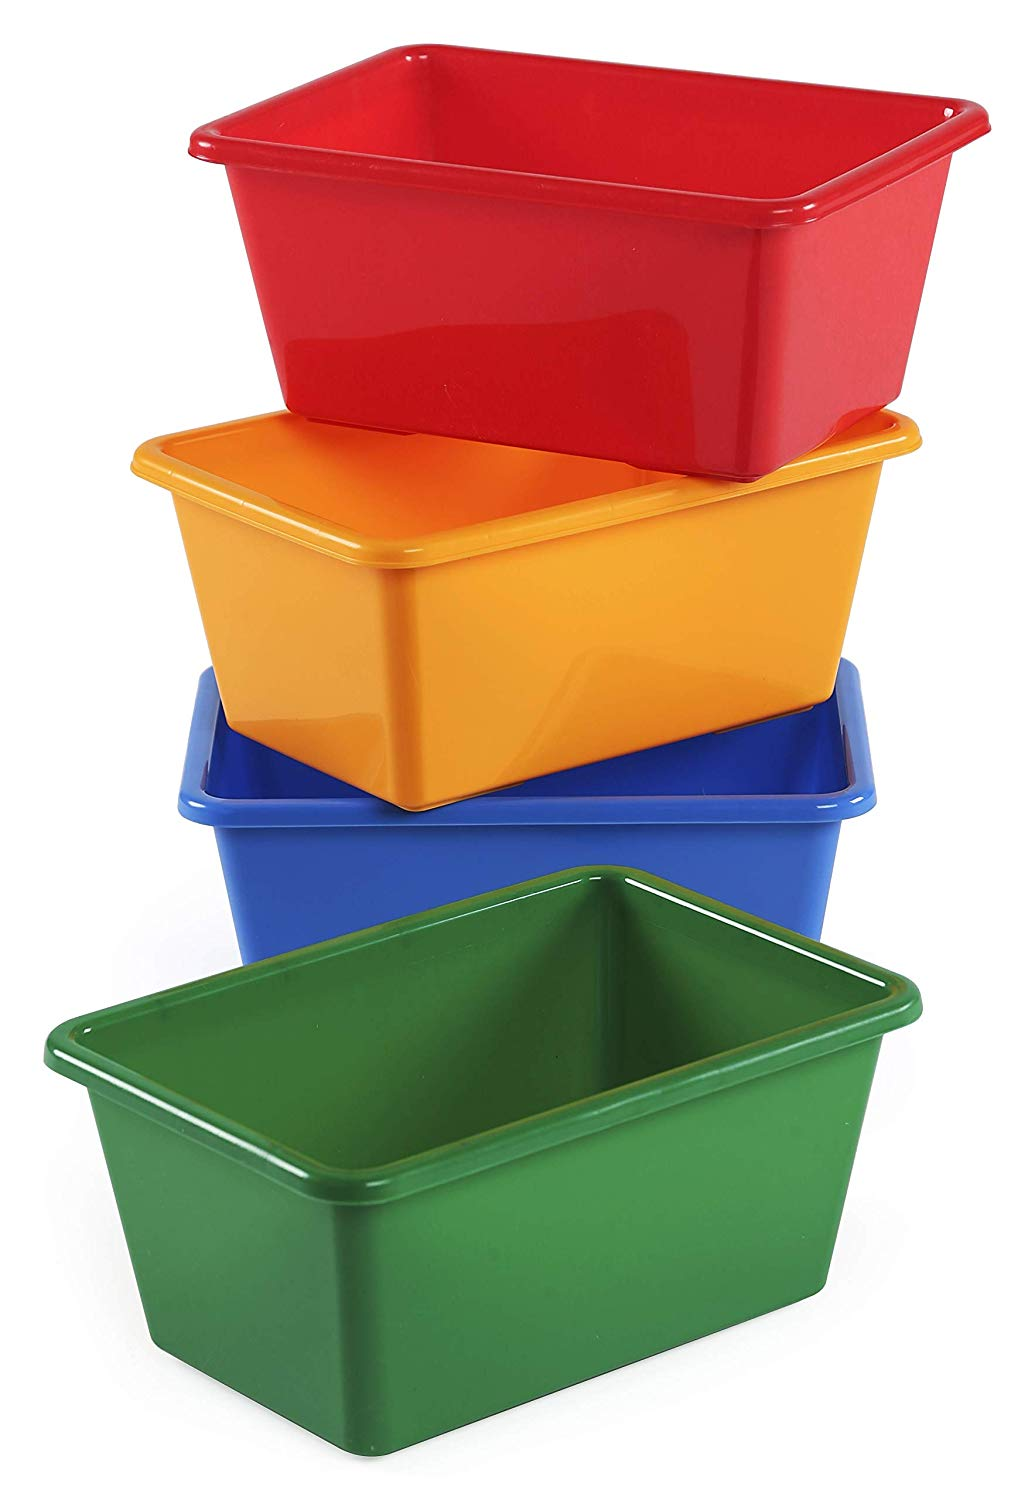 Cheap plastic storage bins for children with bright primary color design